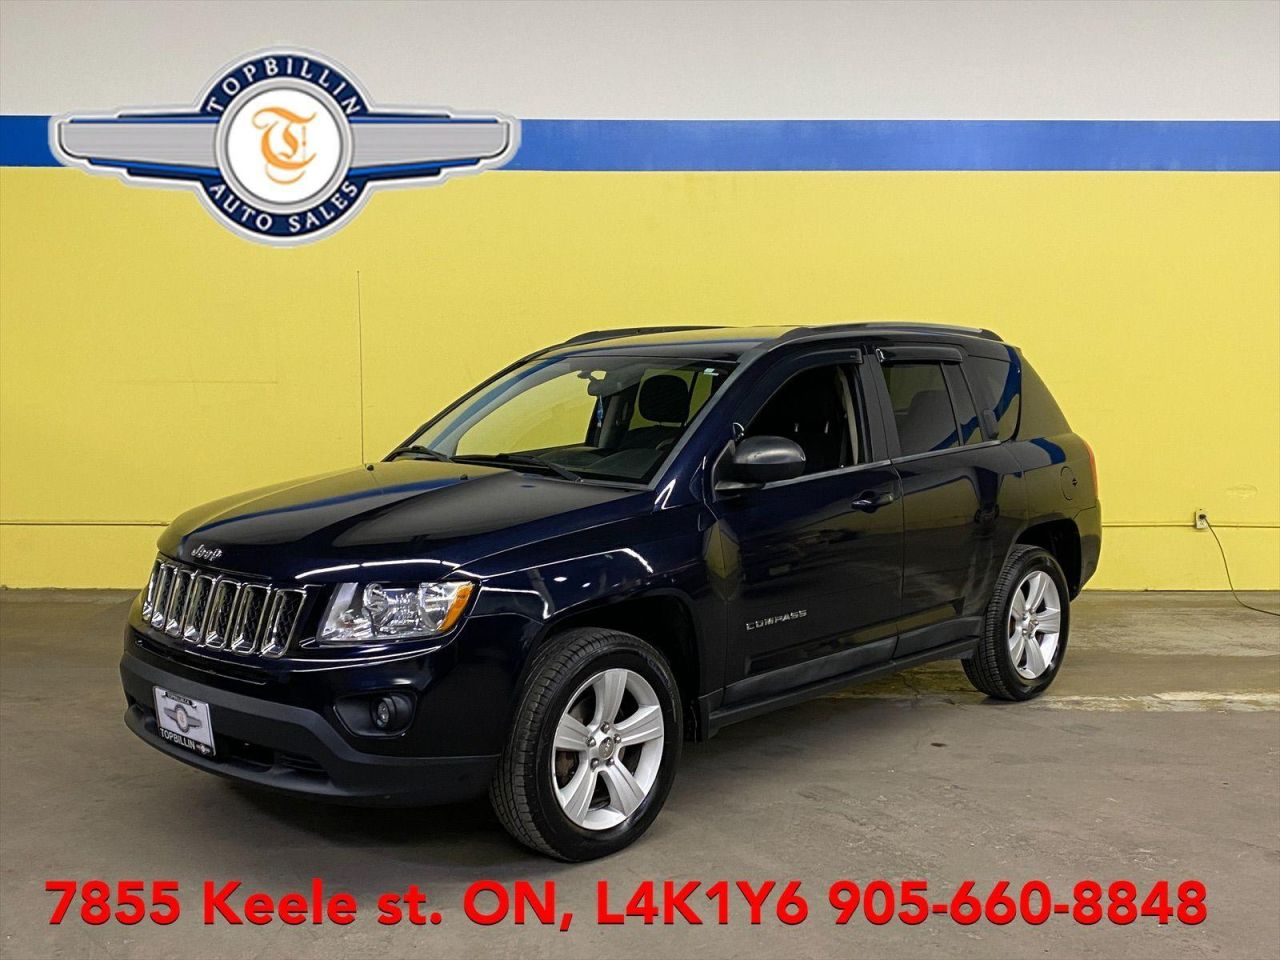 2011 Jeep Compass North Edition, 2 Years Warranty